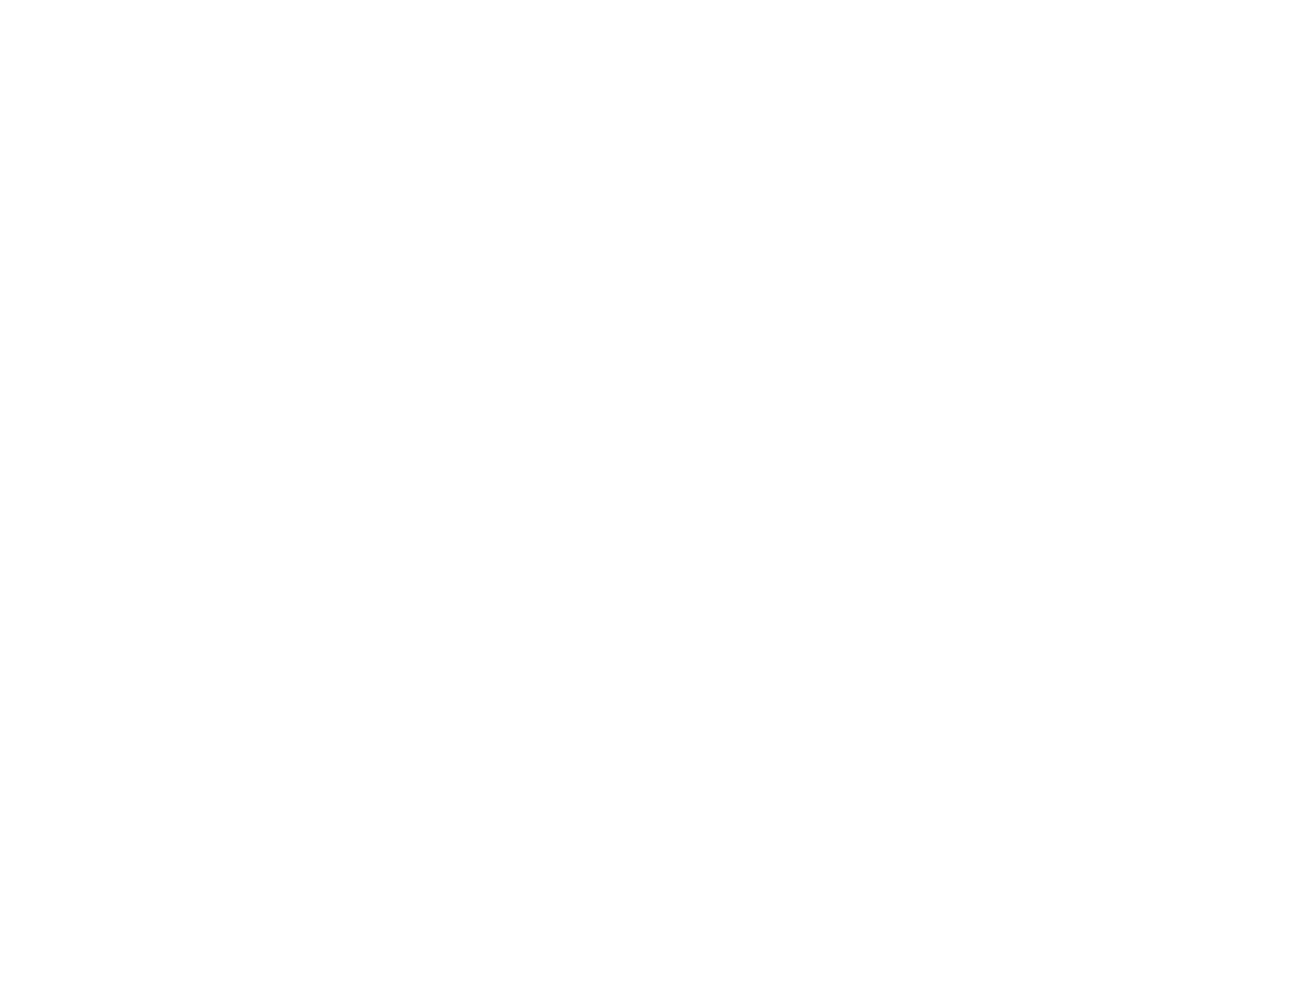 Shikunu-Tribal